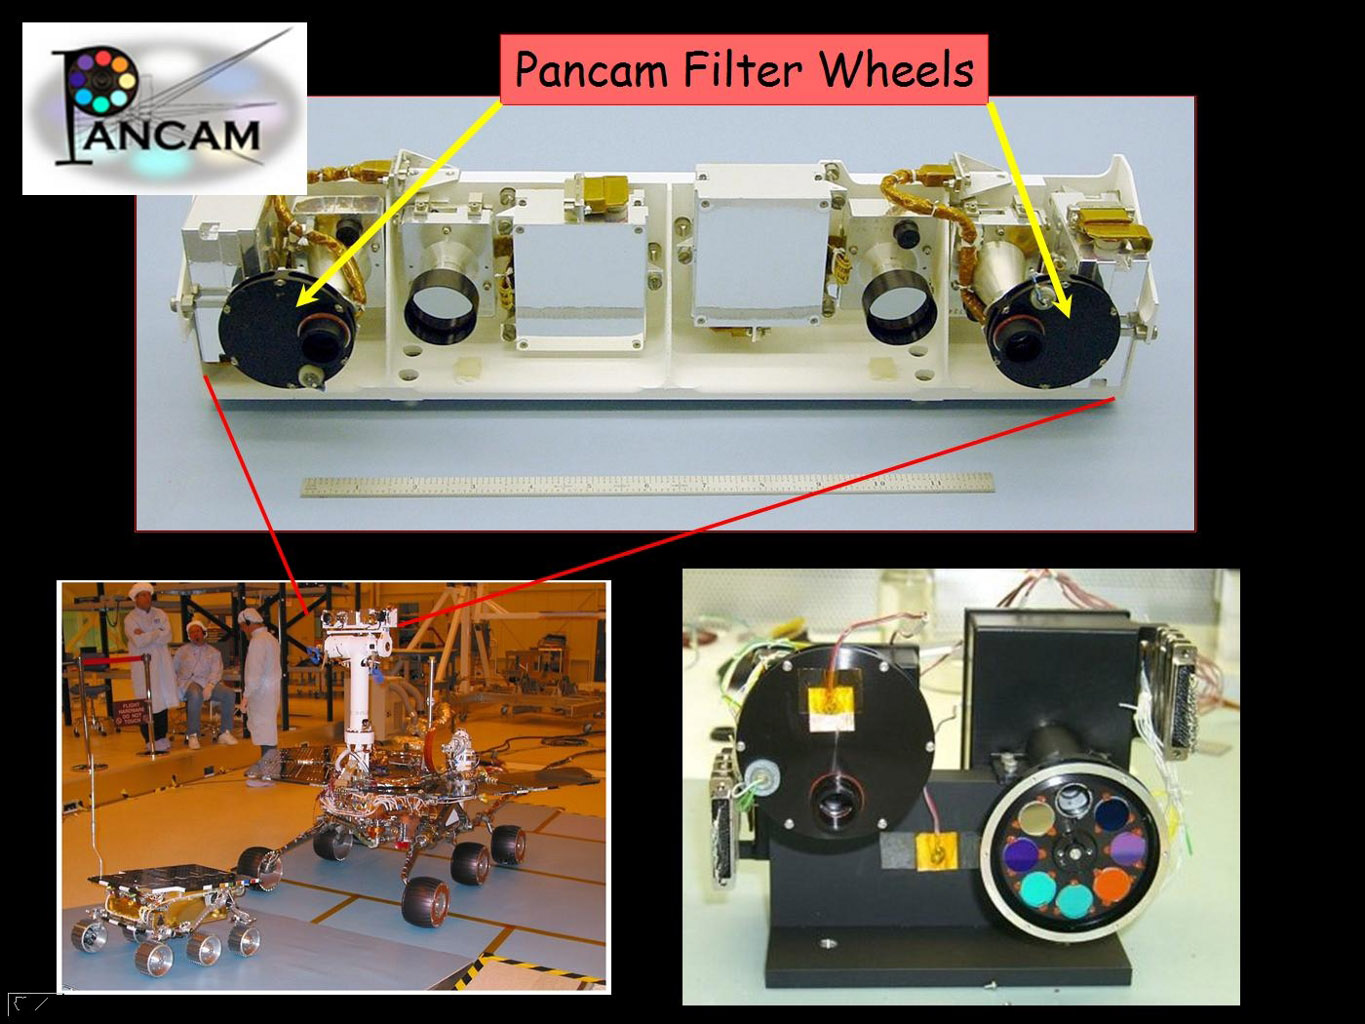 This image taken at NASA's Jet Propulsion Laboratory shows the panoramic camera used onboard both NASA Mars Exploration Rovers.